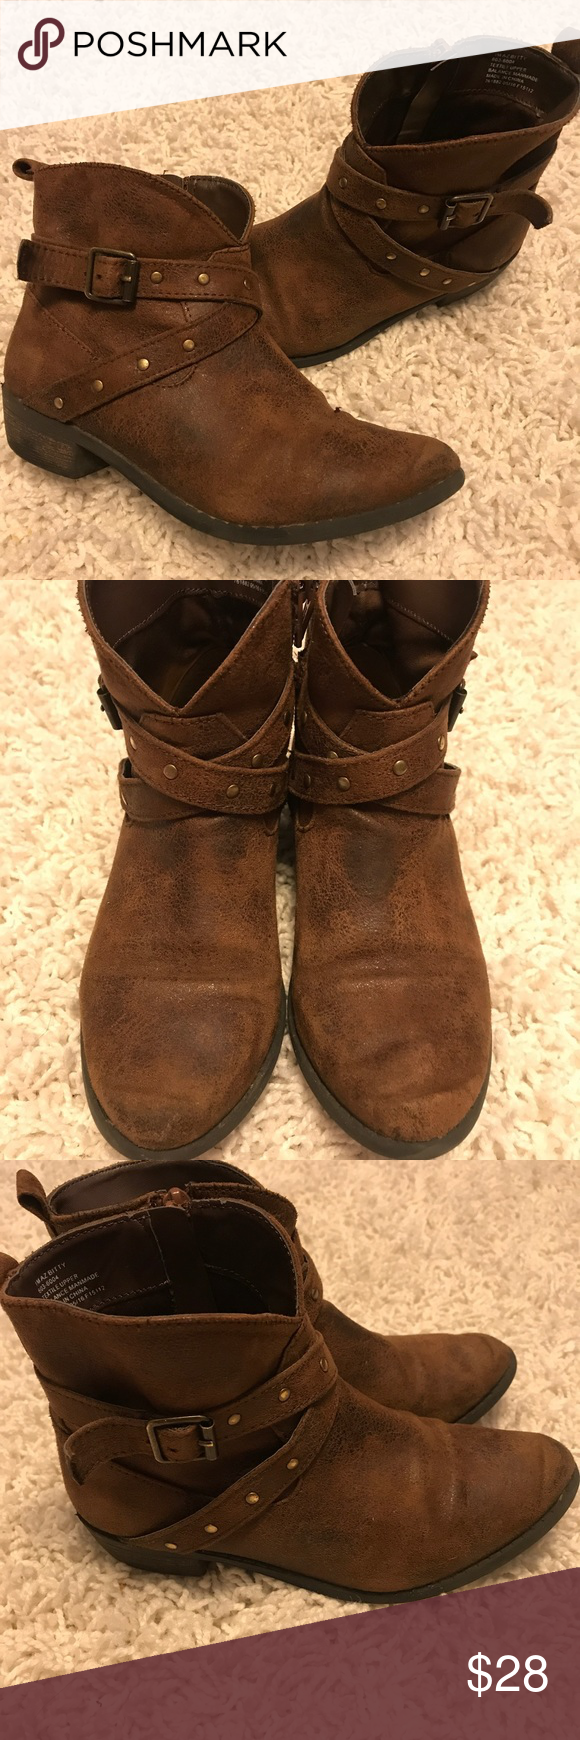 a65ac5bb84943 Arizona by JCP size 1M girls boot! SUPER CUTE! So sad we have to part with  them! Short cut cowgirl boot with bling!